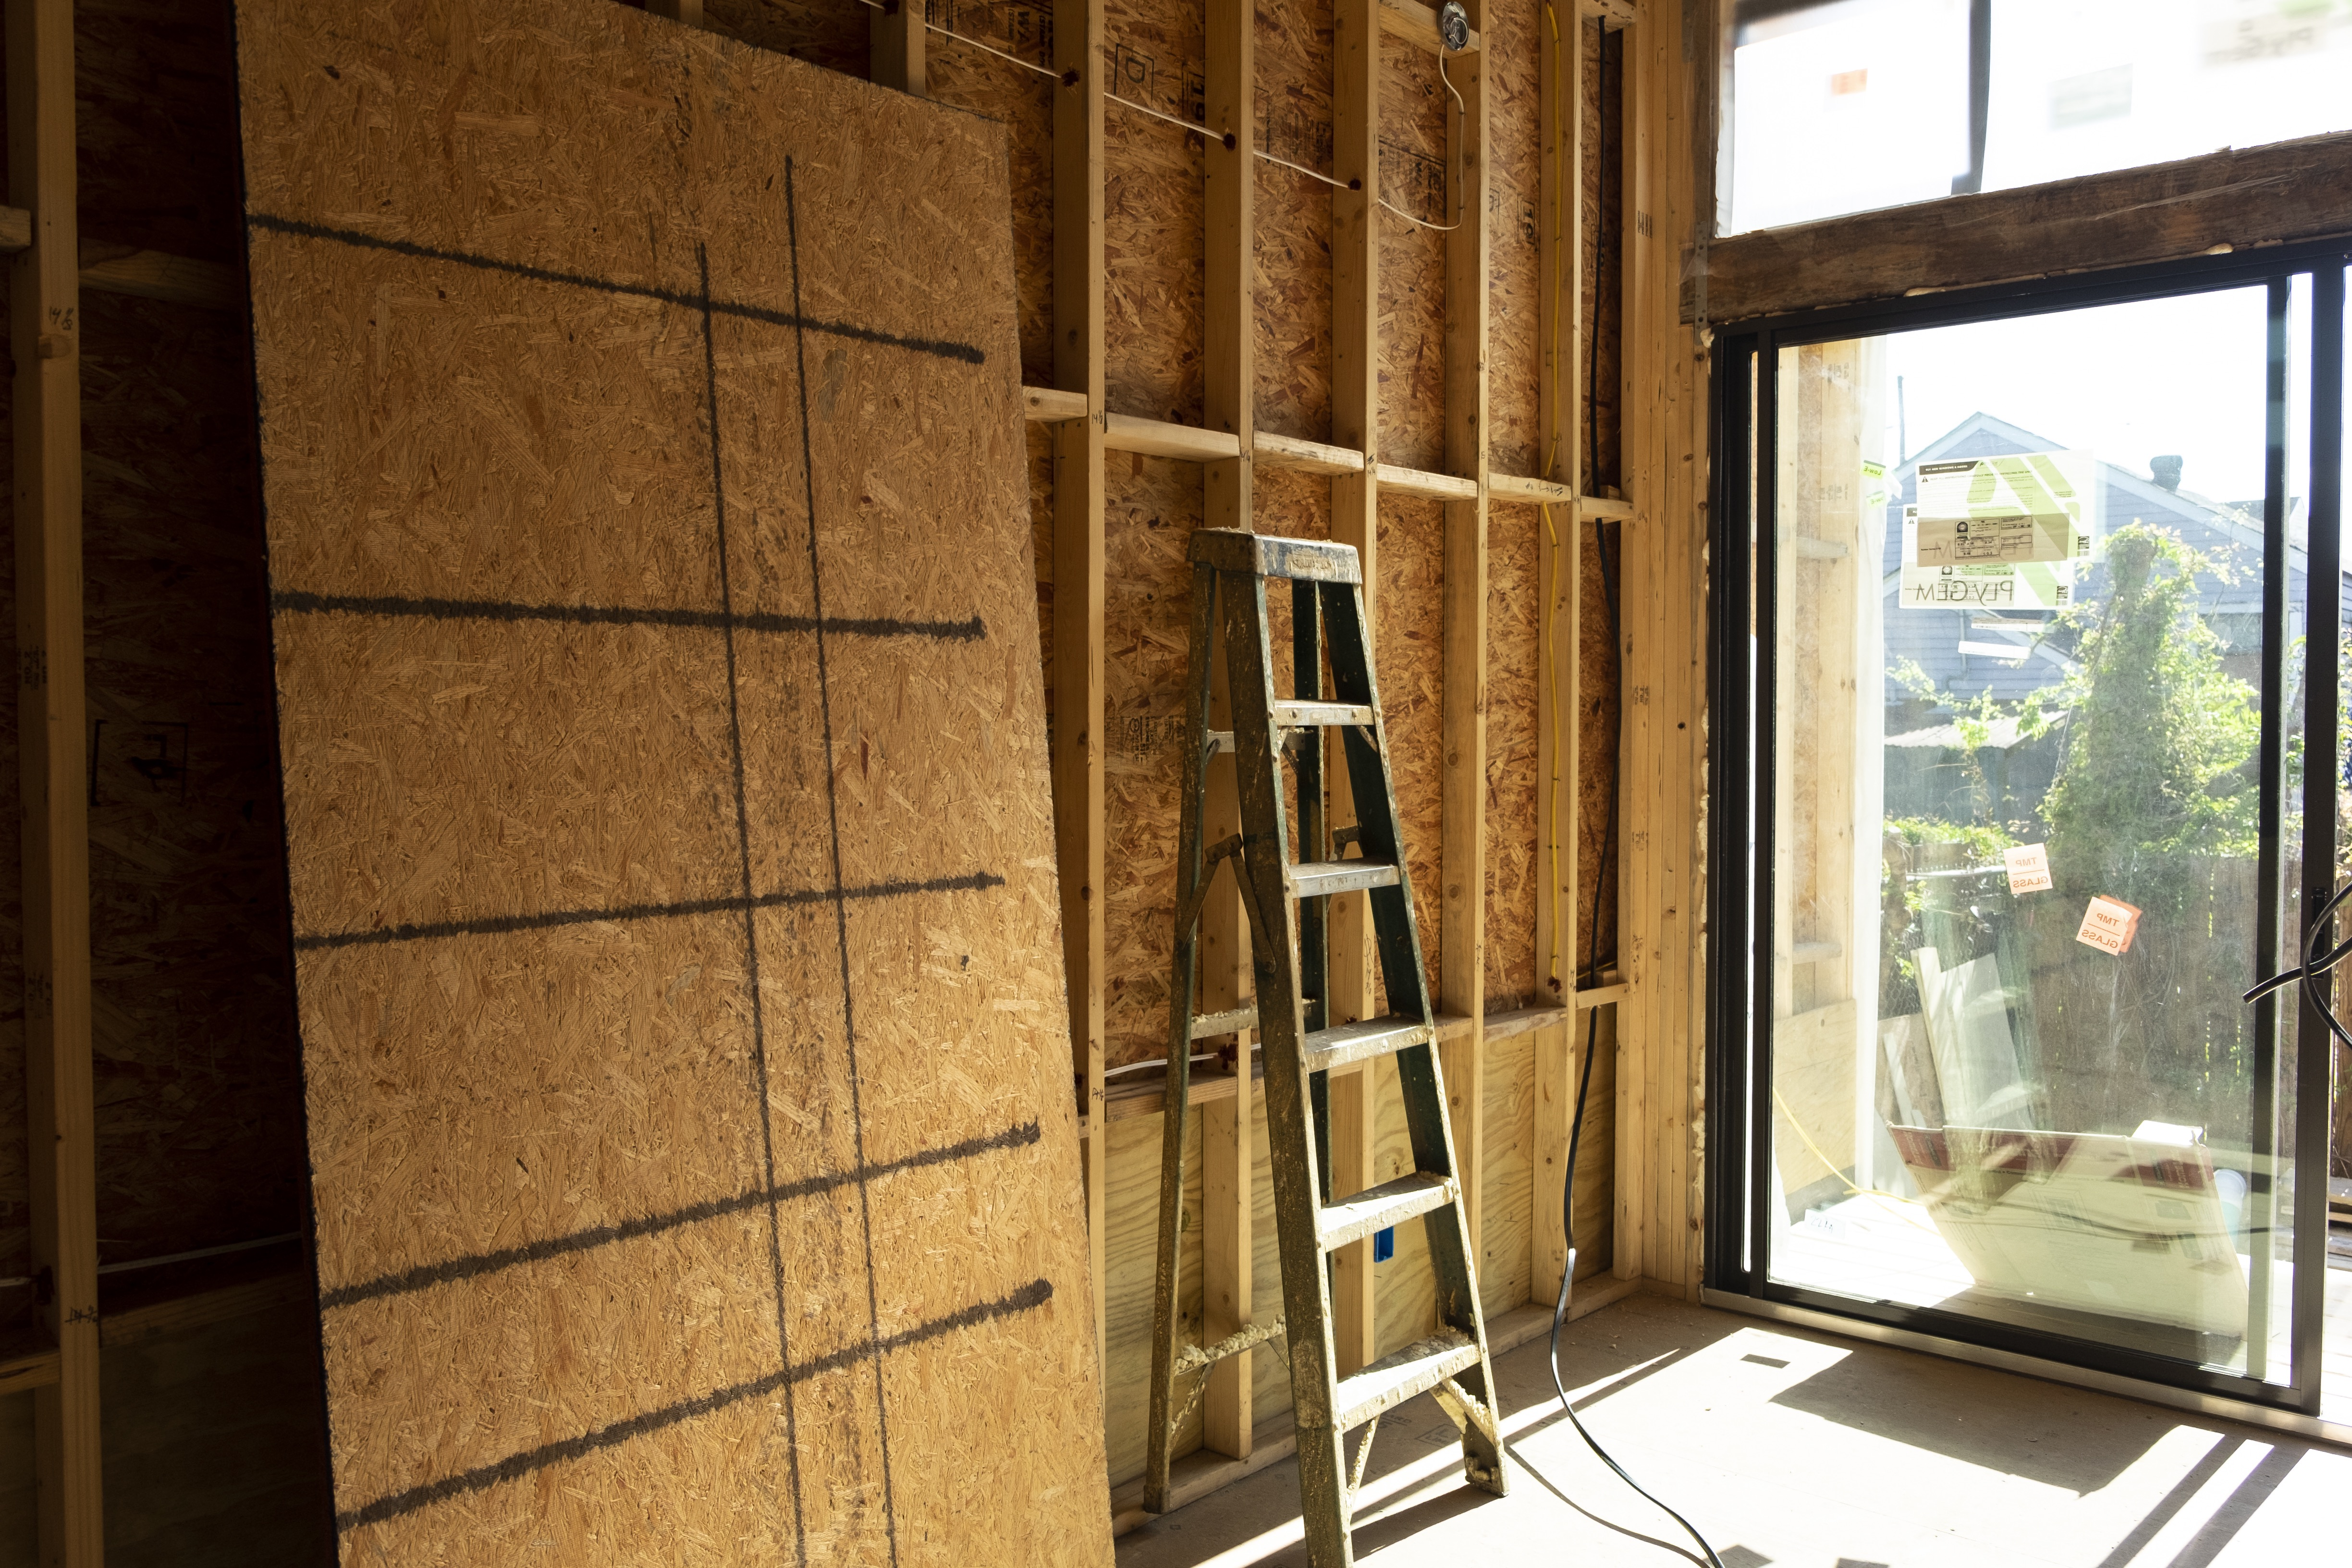 Interior view of home under construction with light coming in through a large window